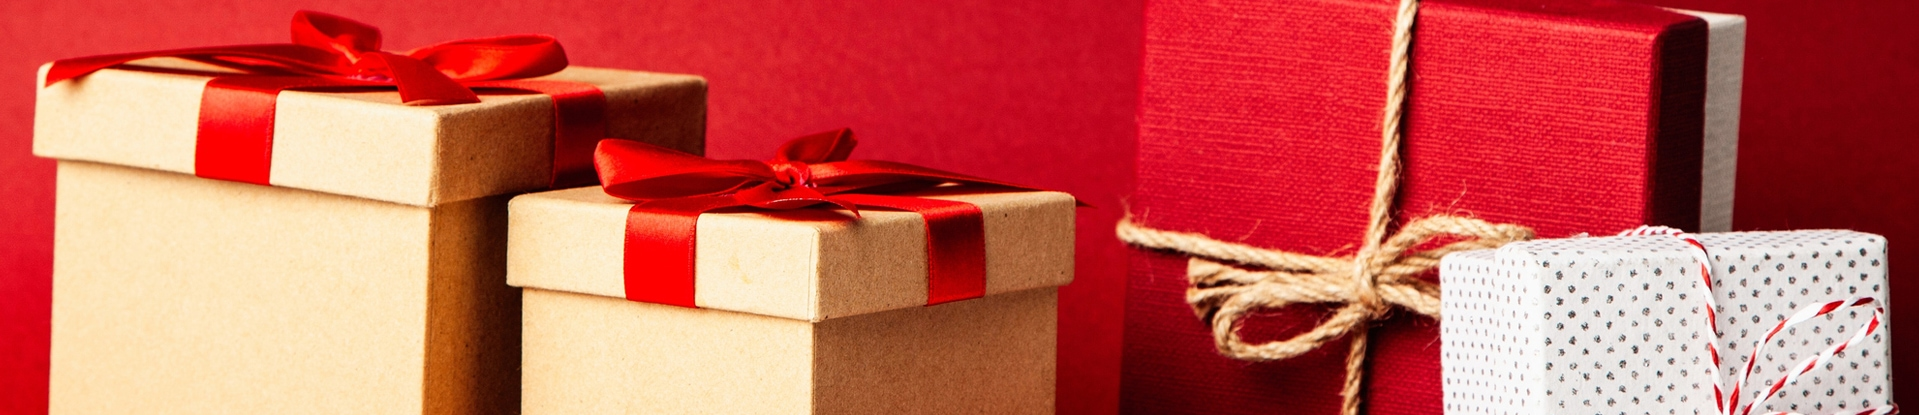 Is the taxman hiding under your christmas tree?